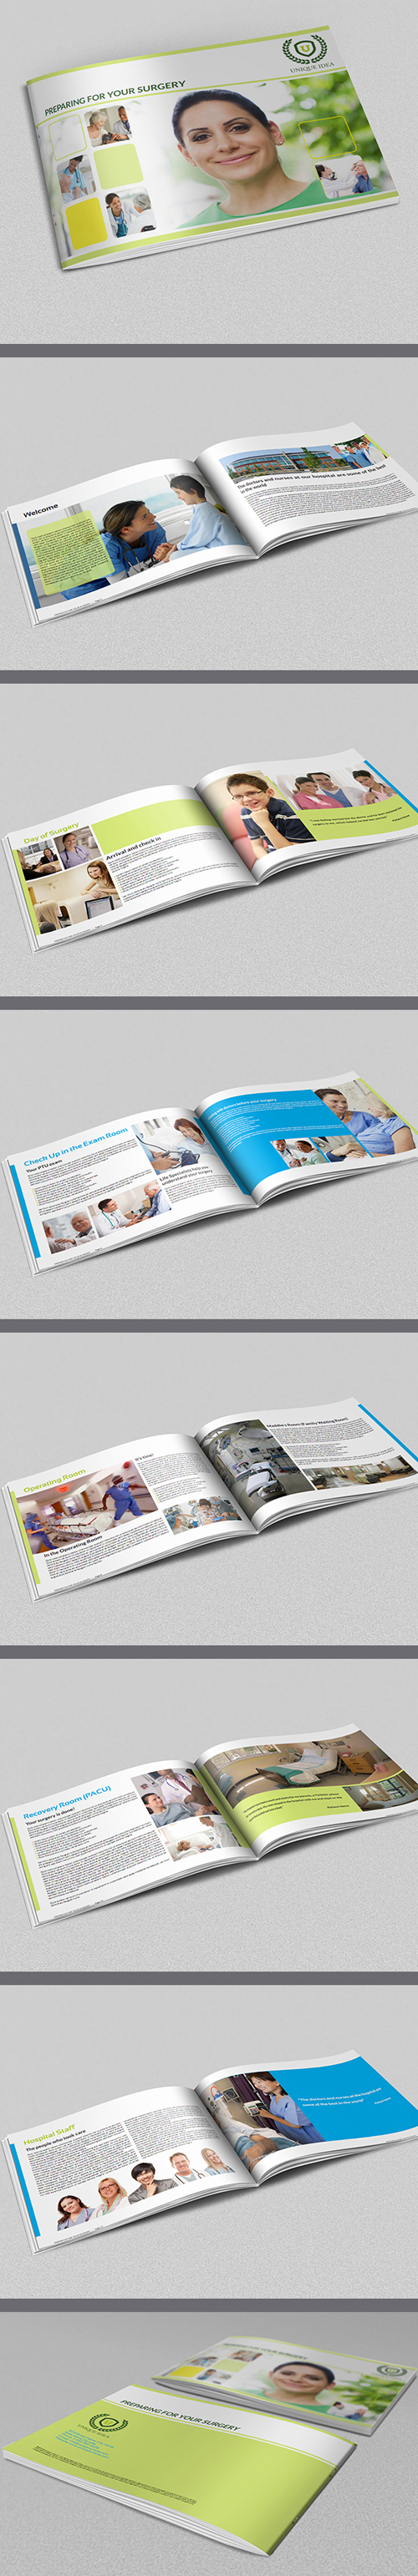 Preparing for Your Surgery Brochure Template